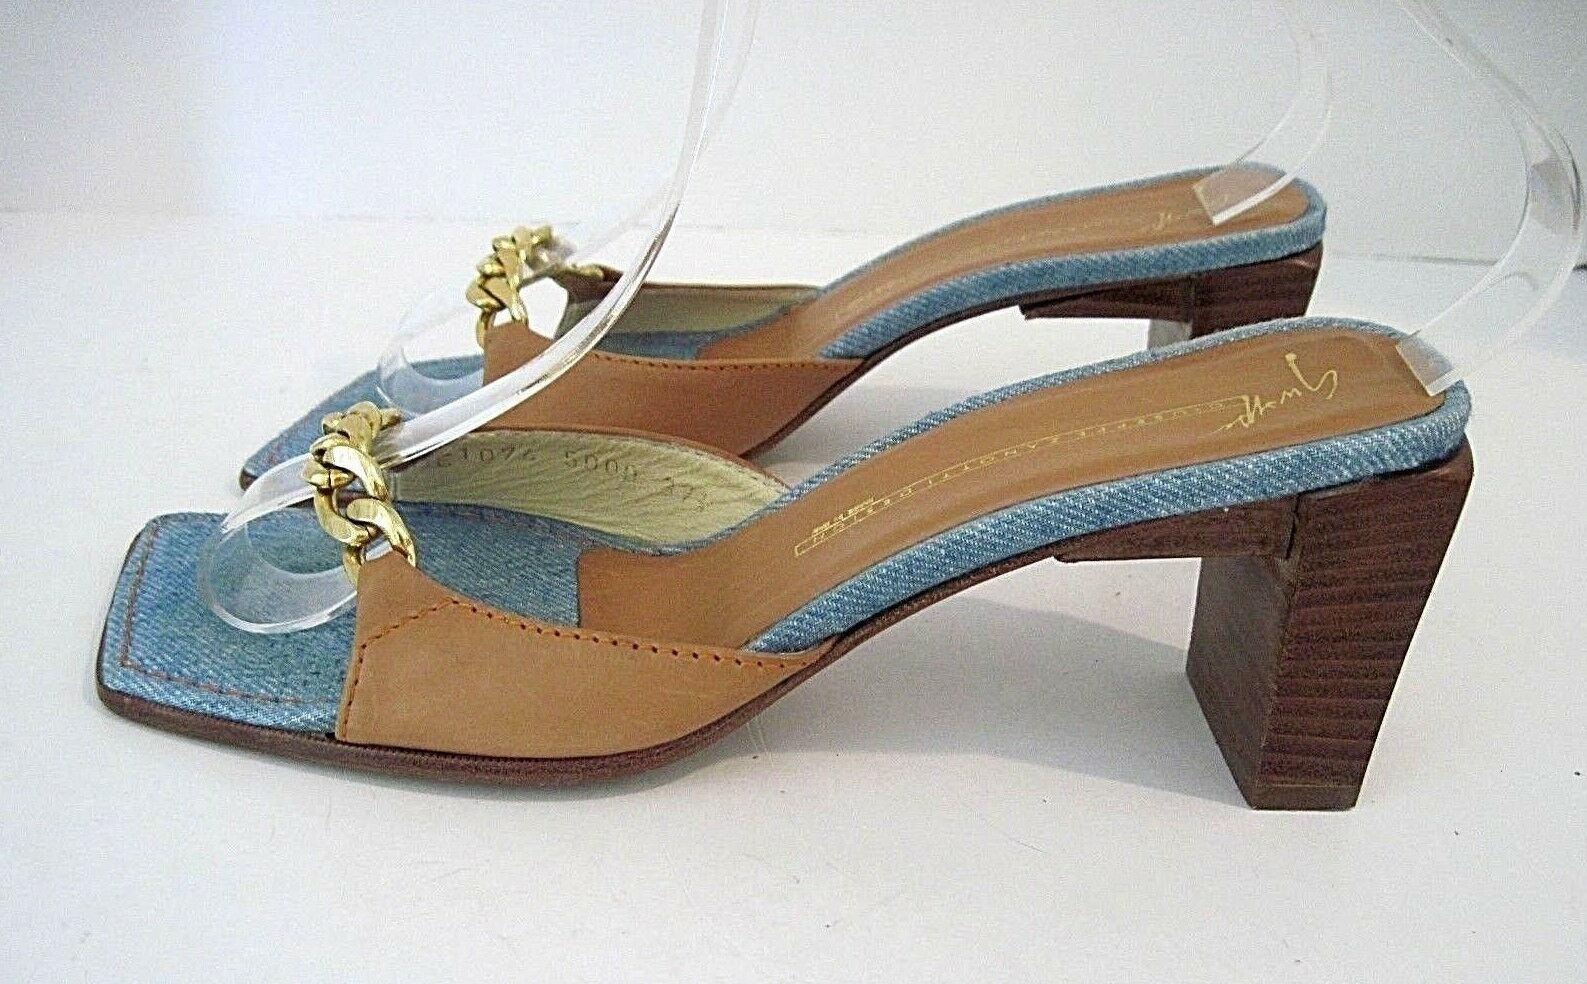 Giuseppe Zanotti Pelle Sandals, Slides With Gold Tone Chain on Front Sz.37 1/2